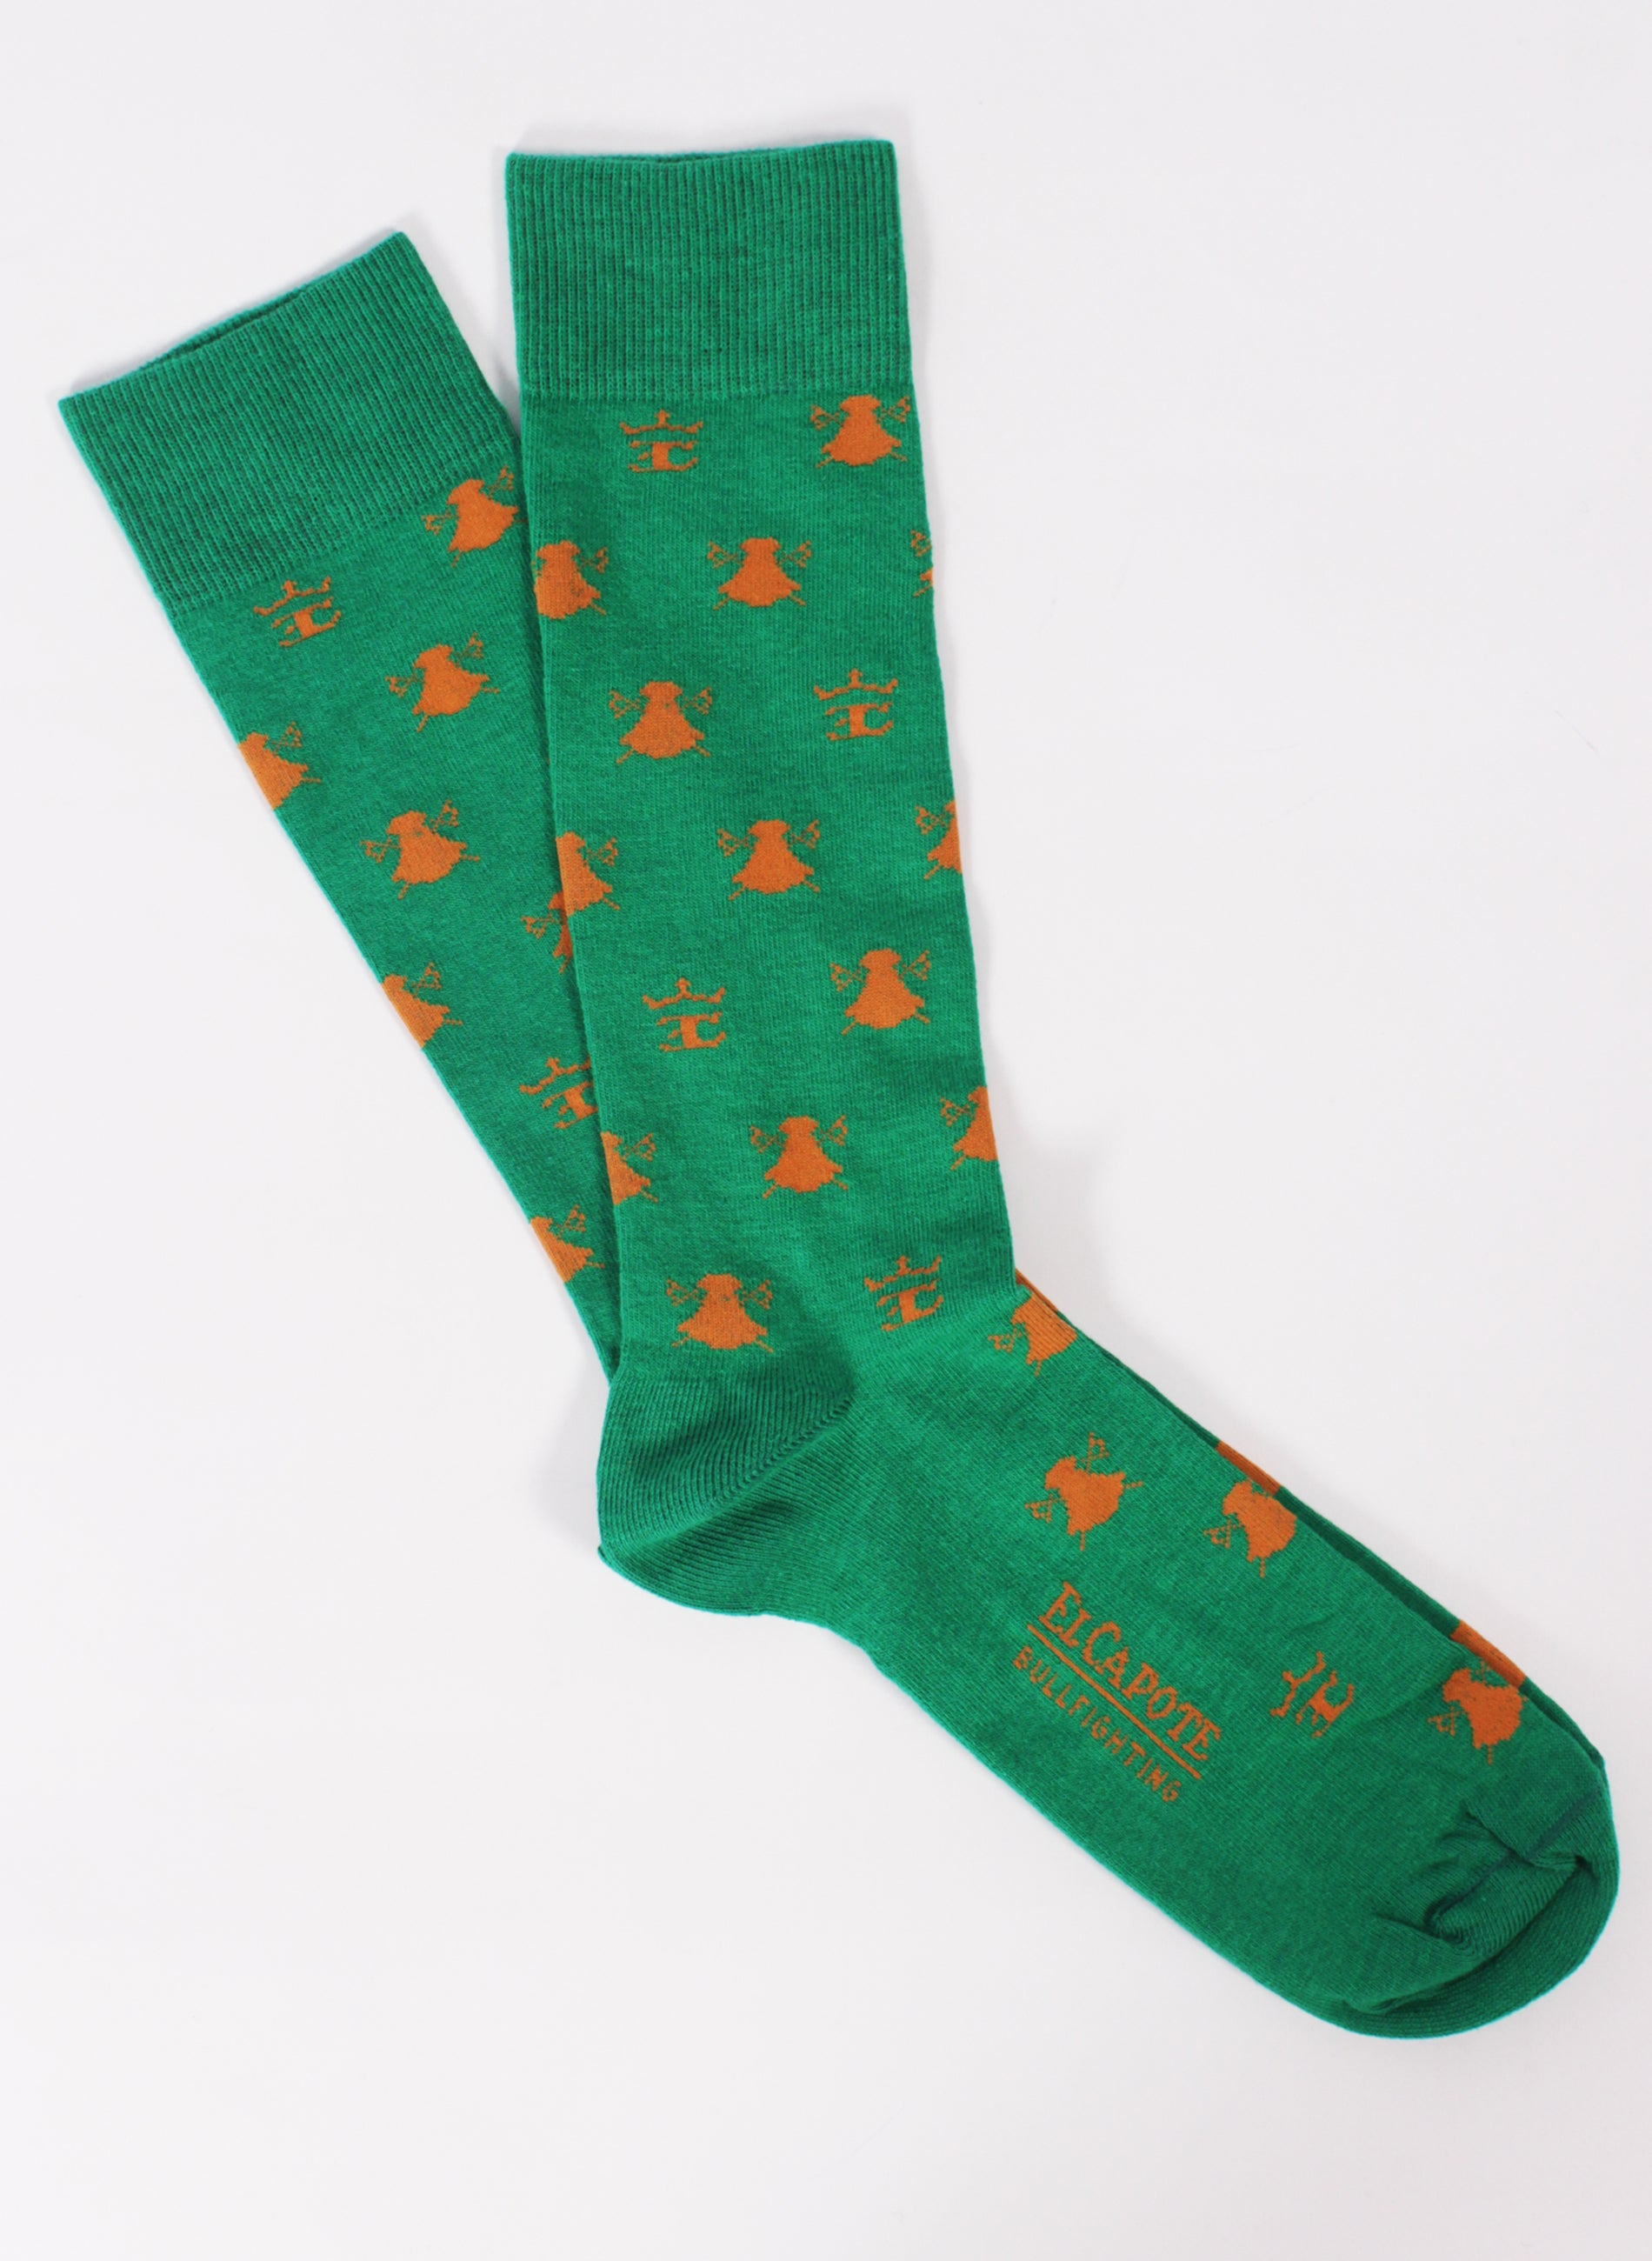 Green Sock Irons The Orange Capote